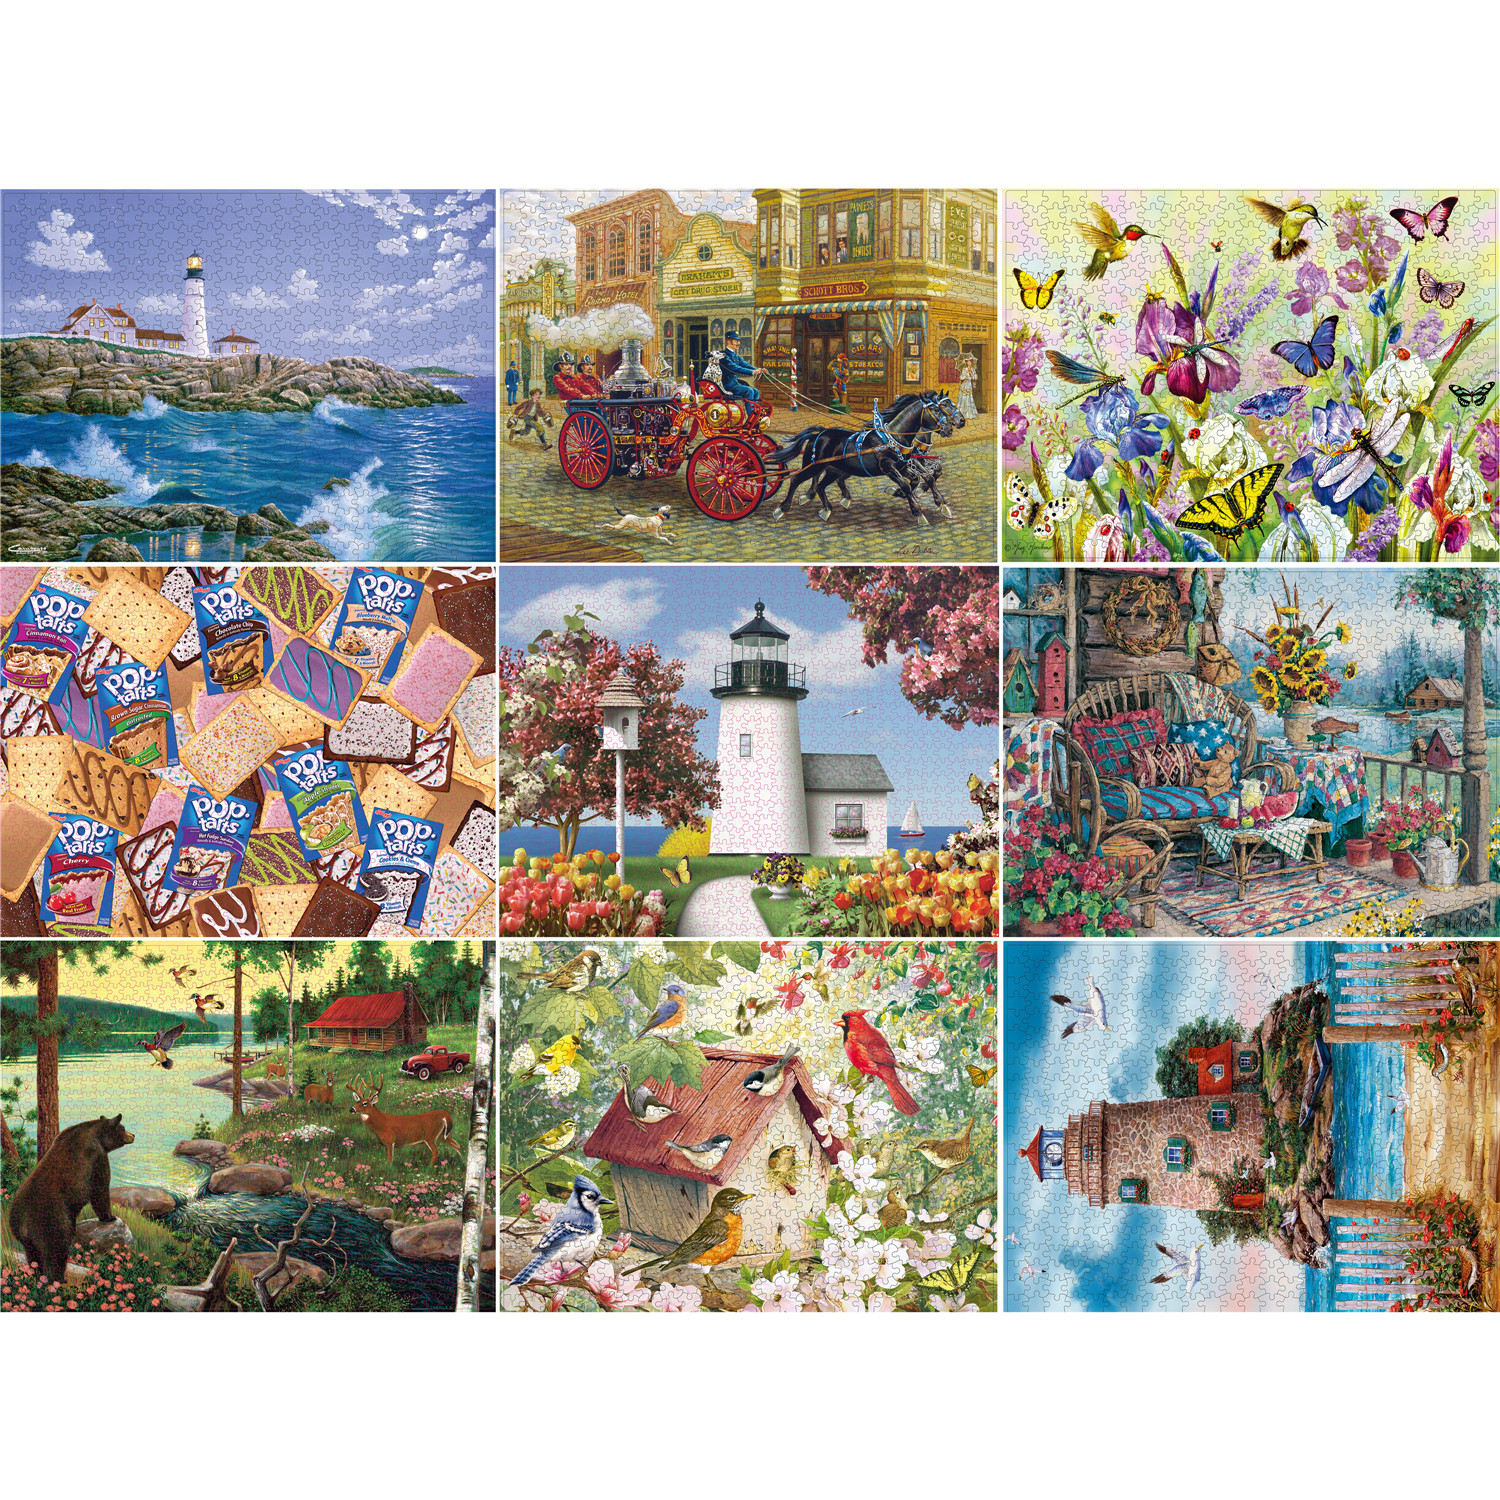 300 550 1000 Pieces Puzzle Kids Jigsaw Puzzles Noctilucent Educational Toys For Children Adult Puzzles